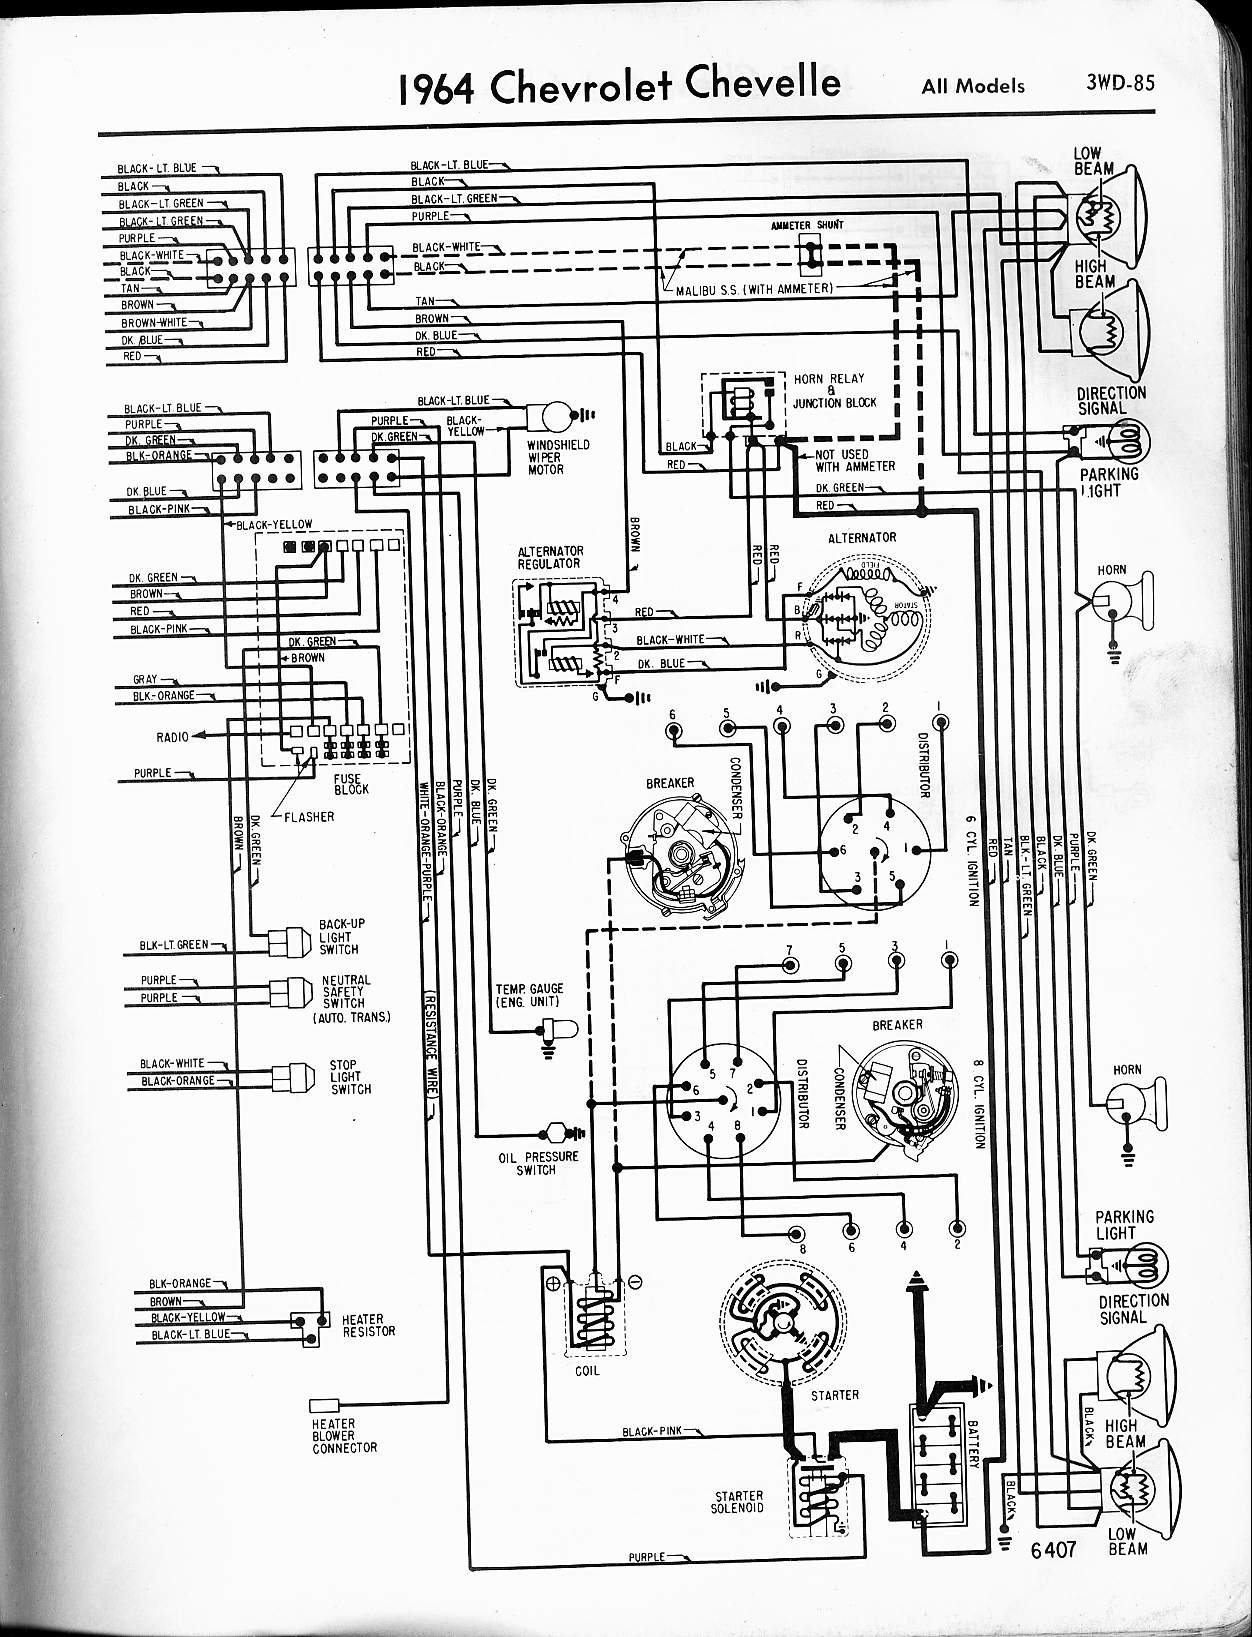 chevy diagrams rh wiring wizard com 2002 Chevy Impala Wiring Diagram 04 Impala Wiring Diagrams